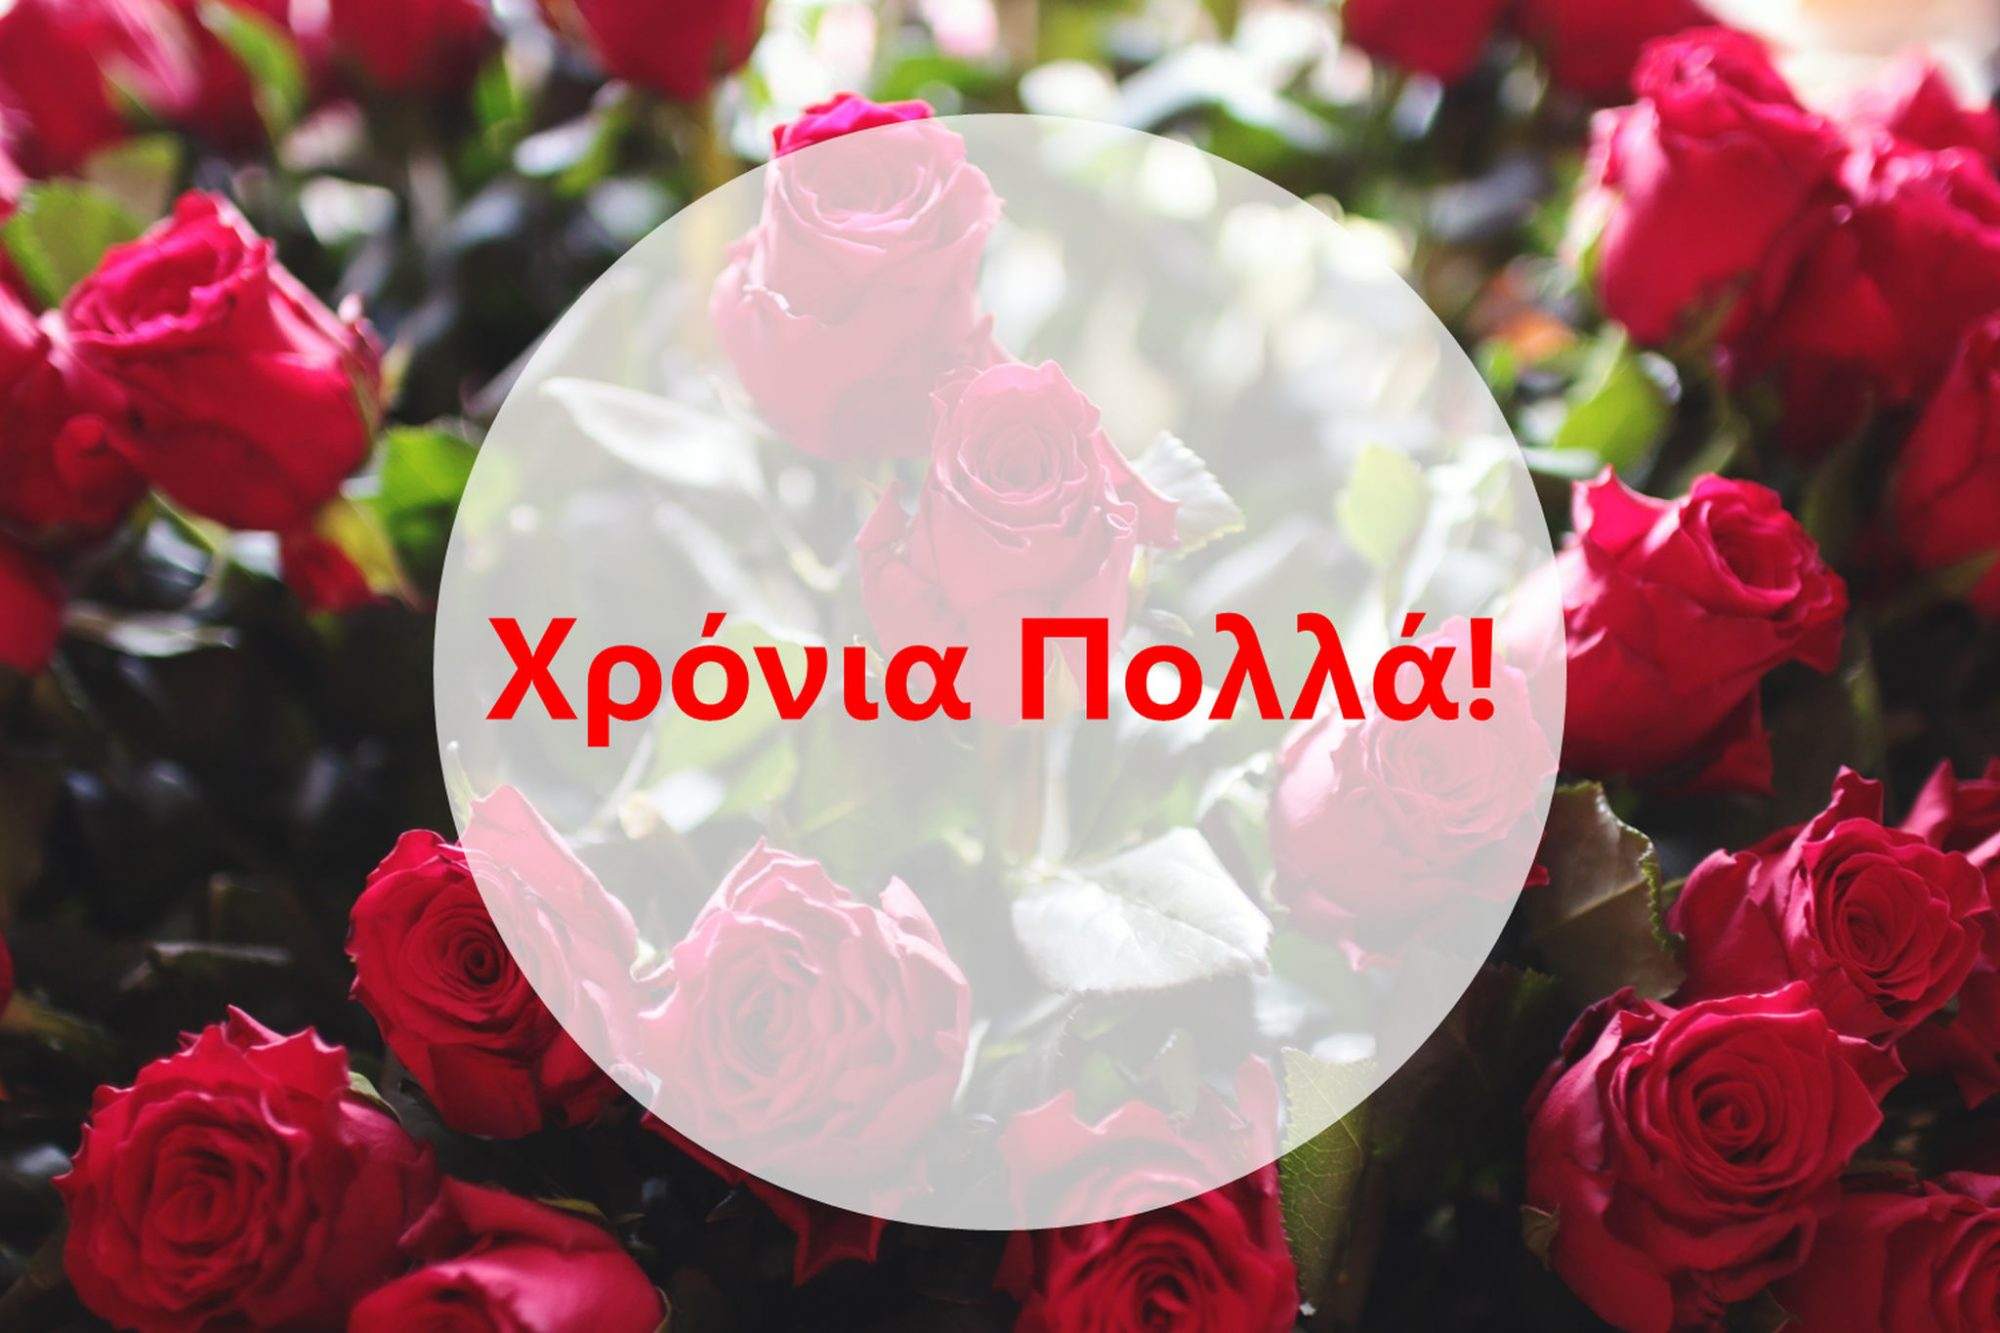 How To Wish Something In Greek During Celebrations And Social